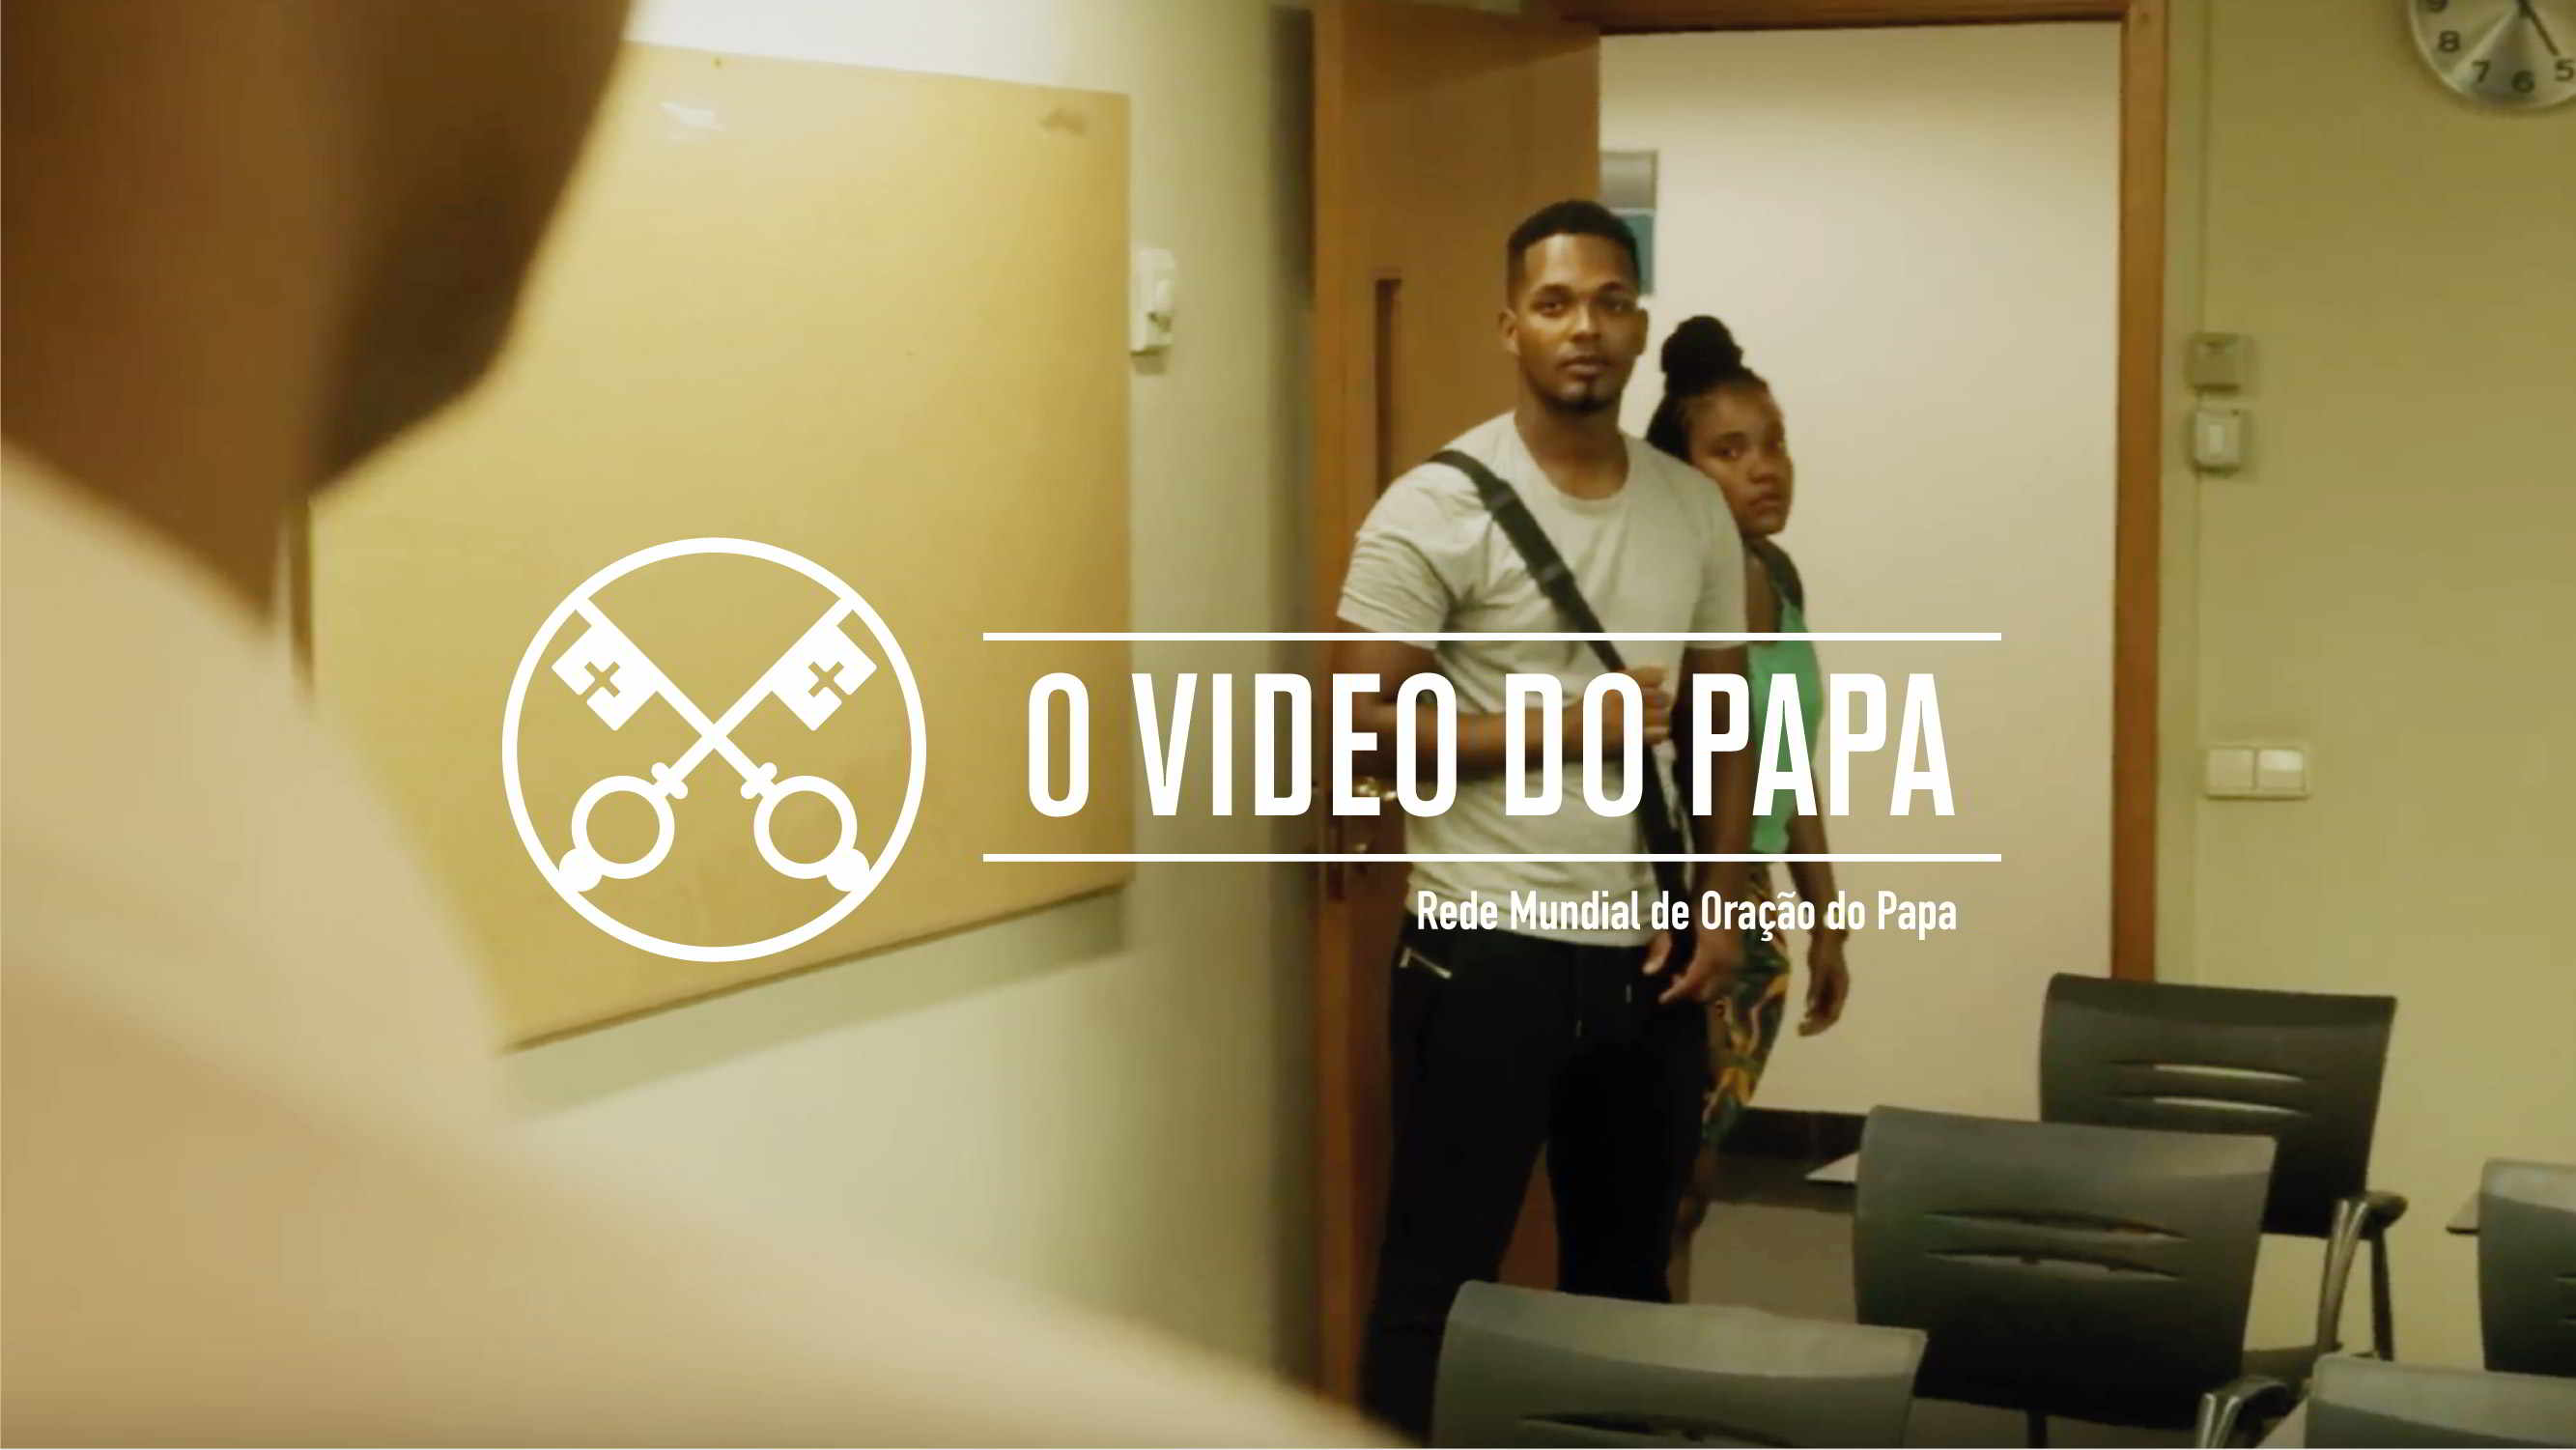 Official Image - The Pope Video 9 2018 - Young People in Africa - 5 Portuguese